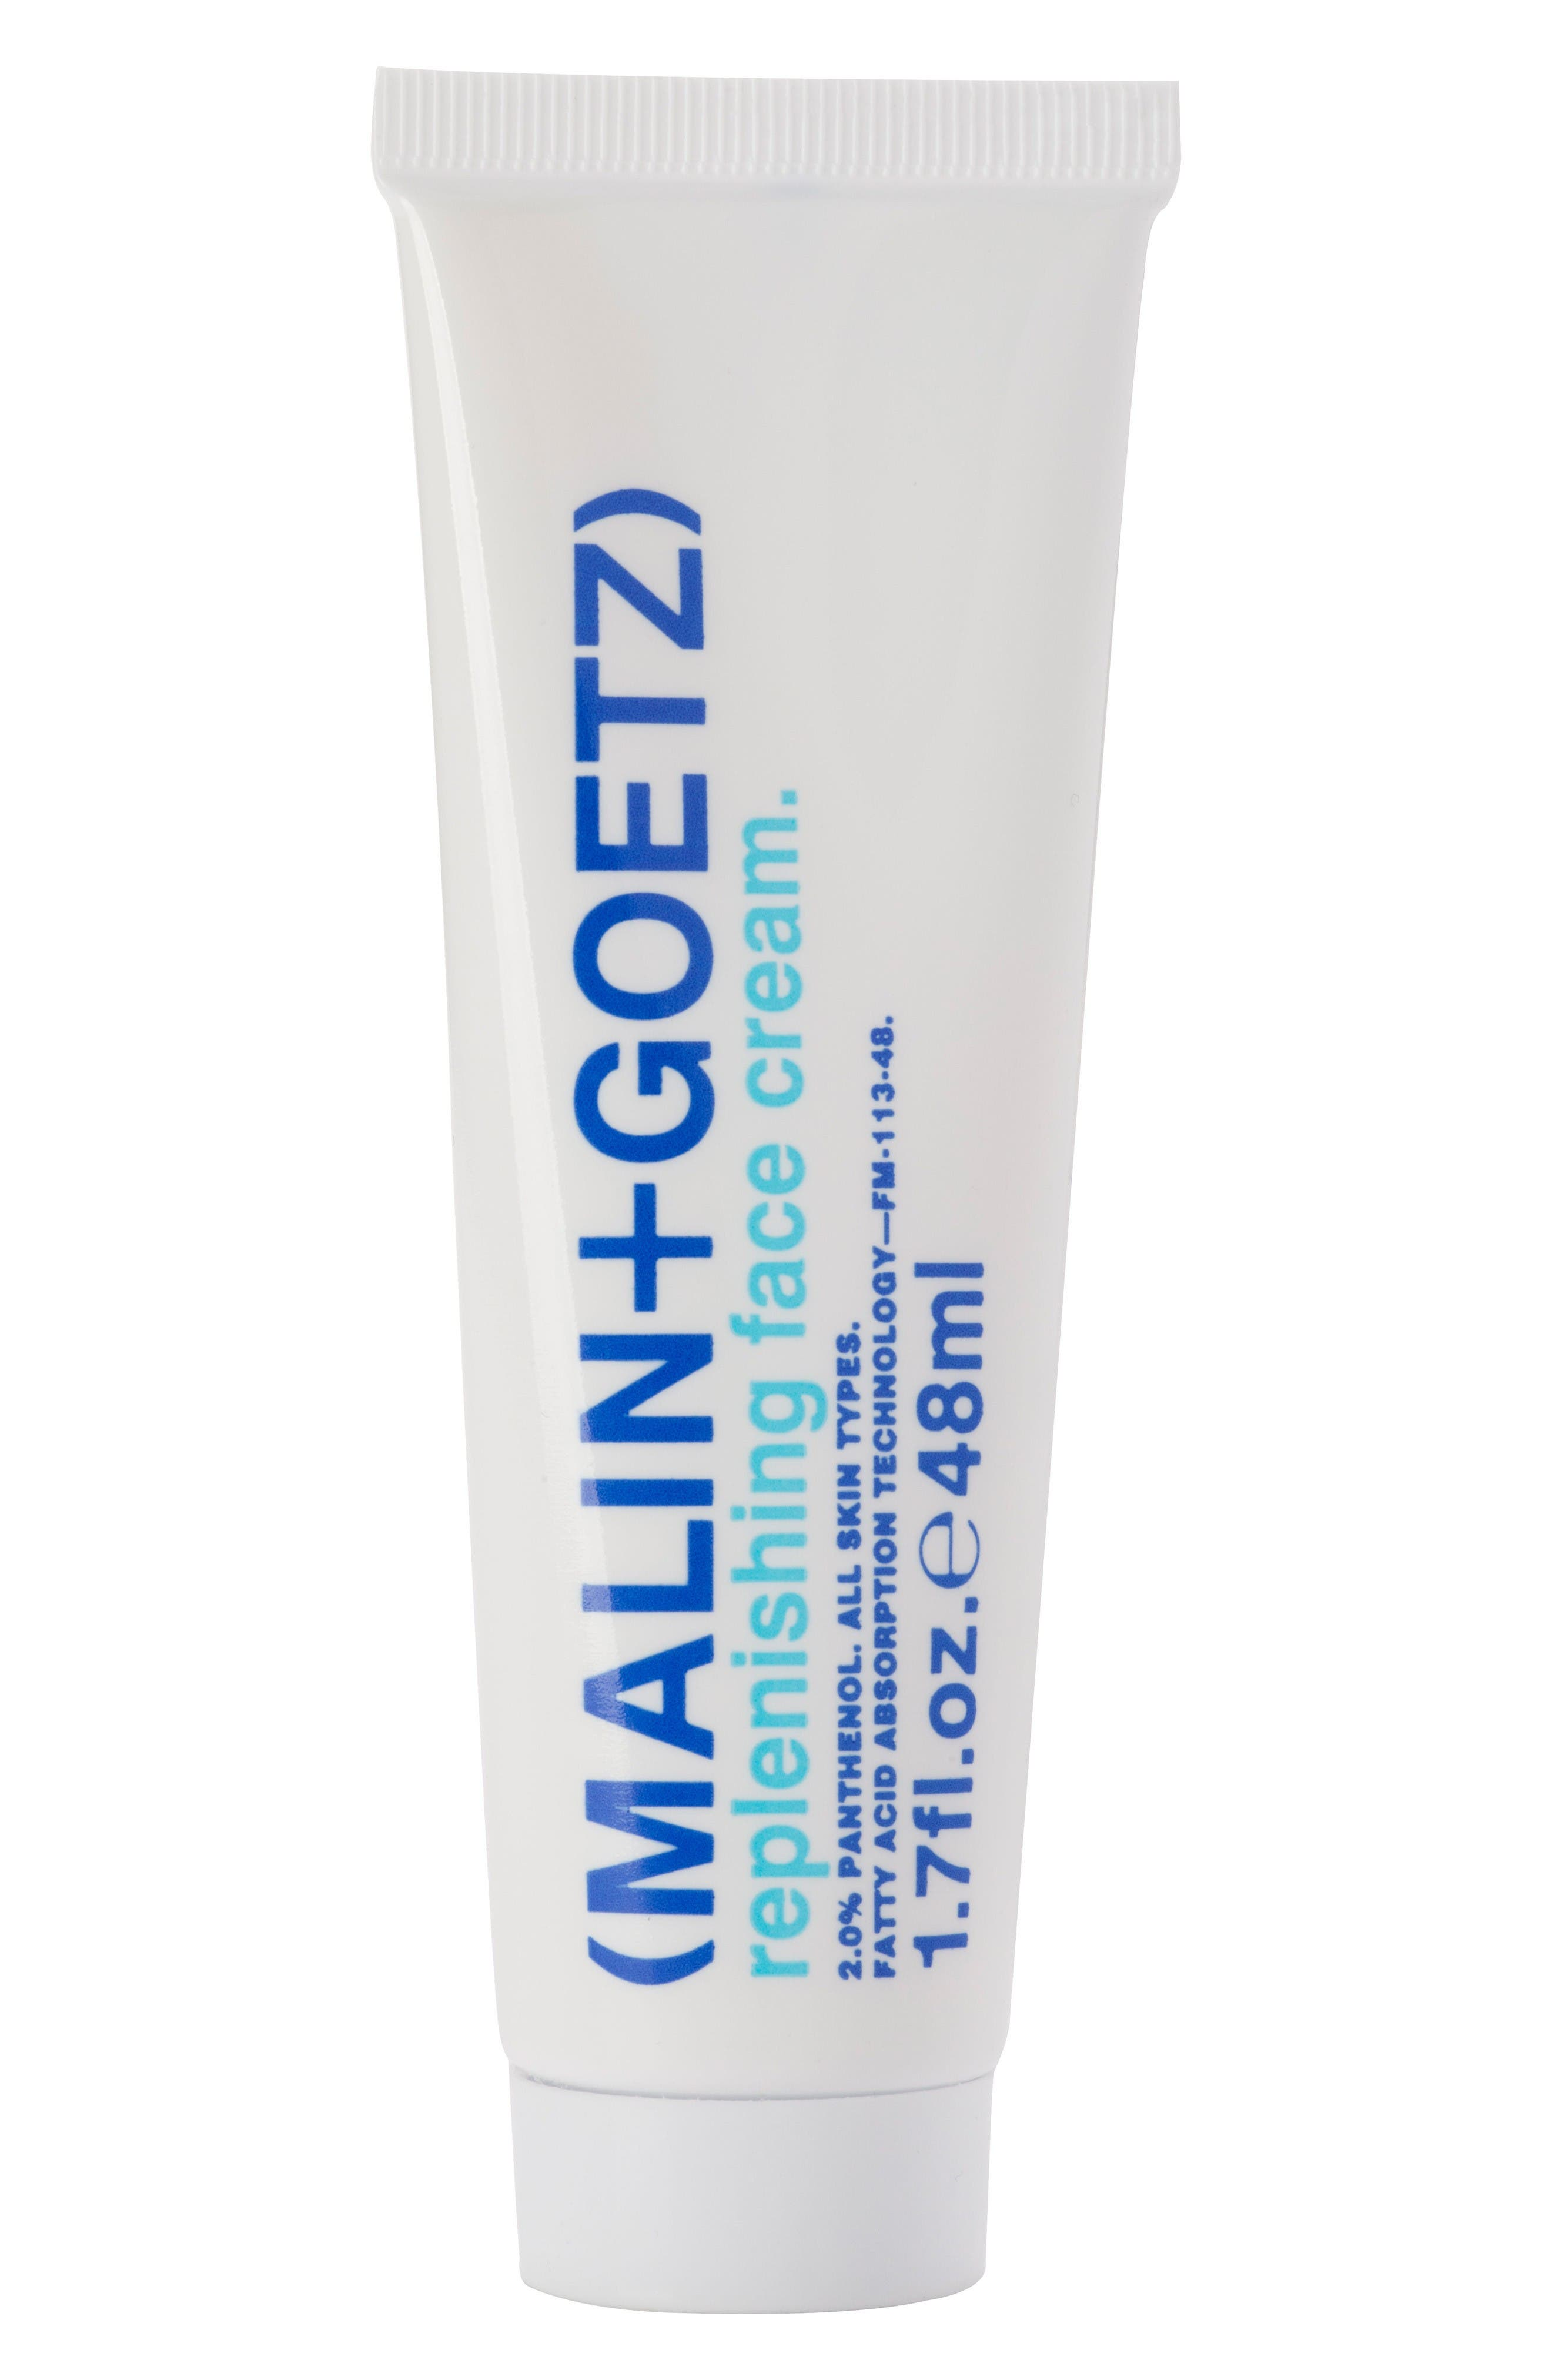 Replenishing Face Cream,                             Main thumbnail 1, color,                             No Color